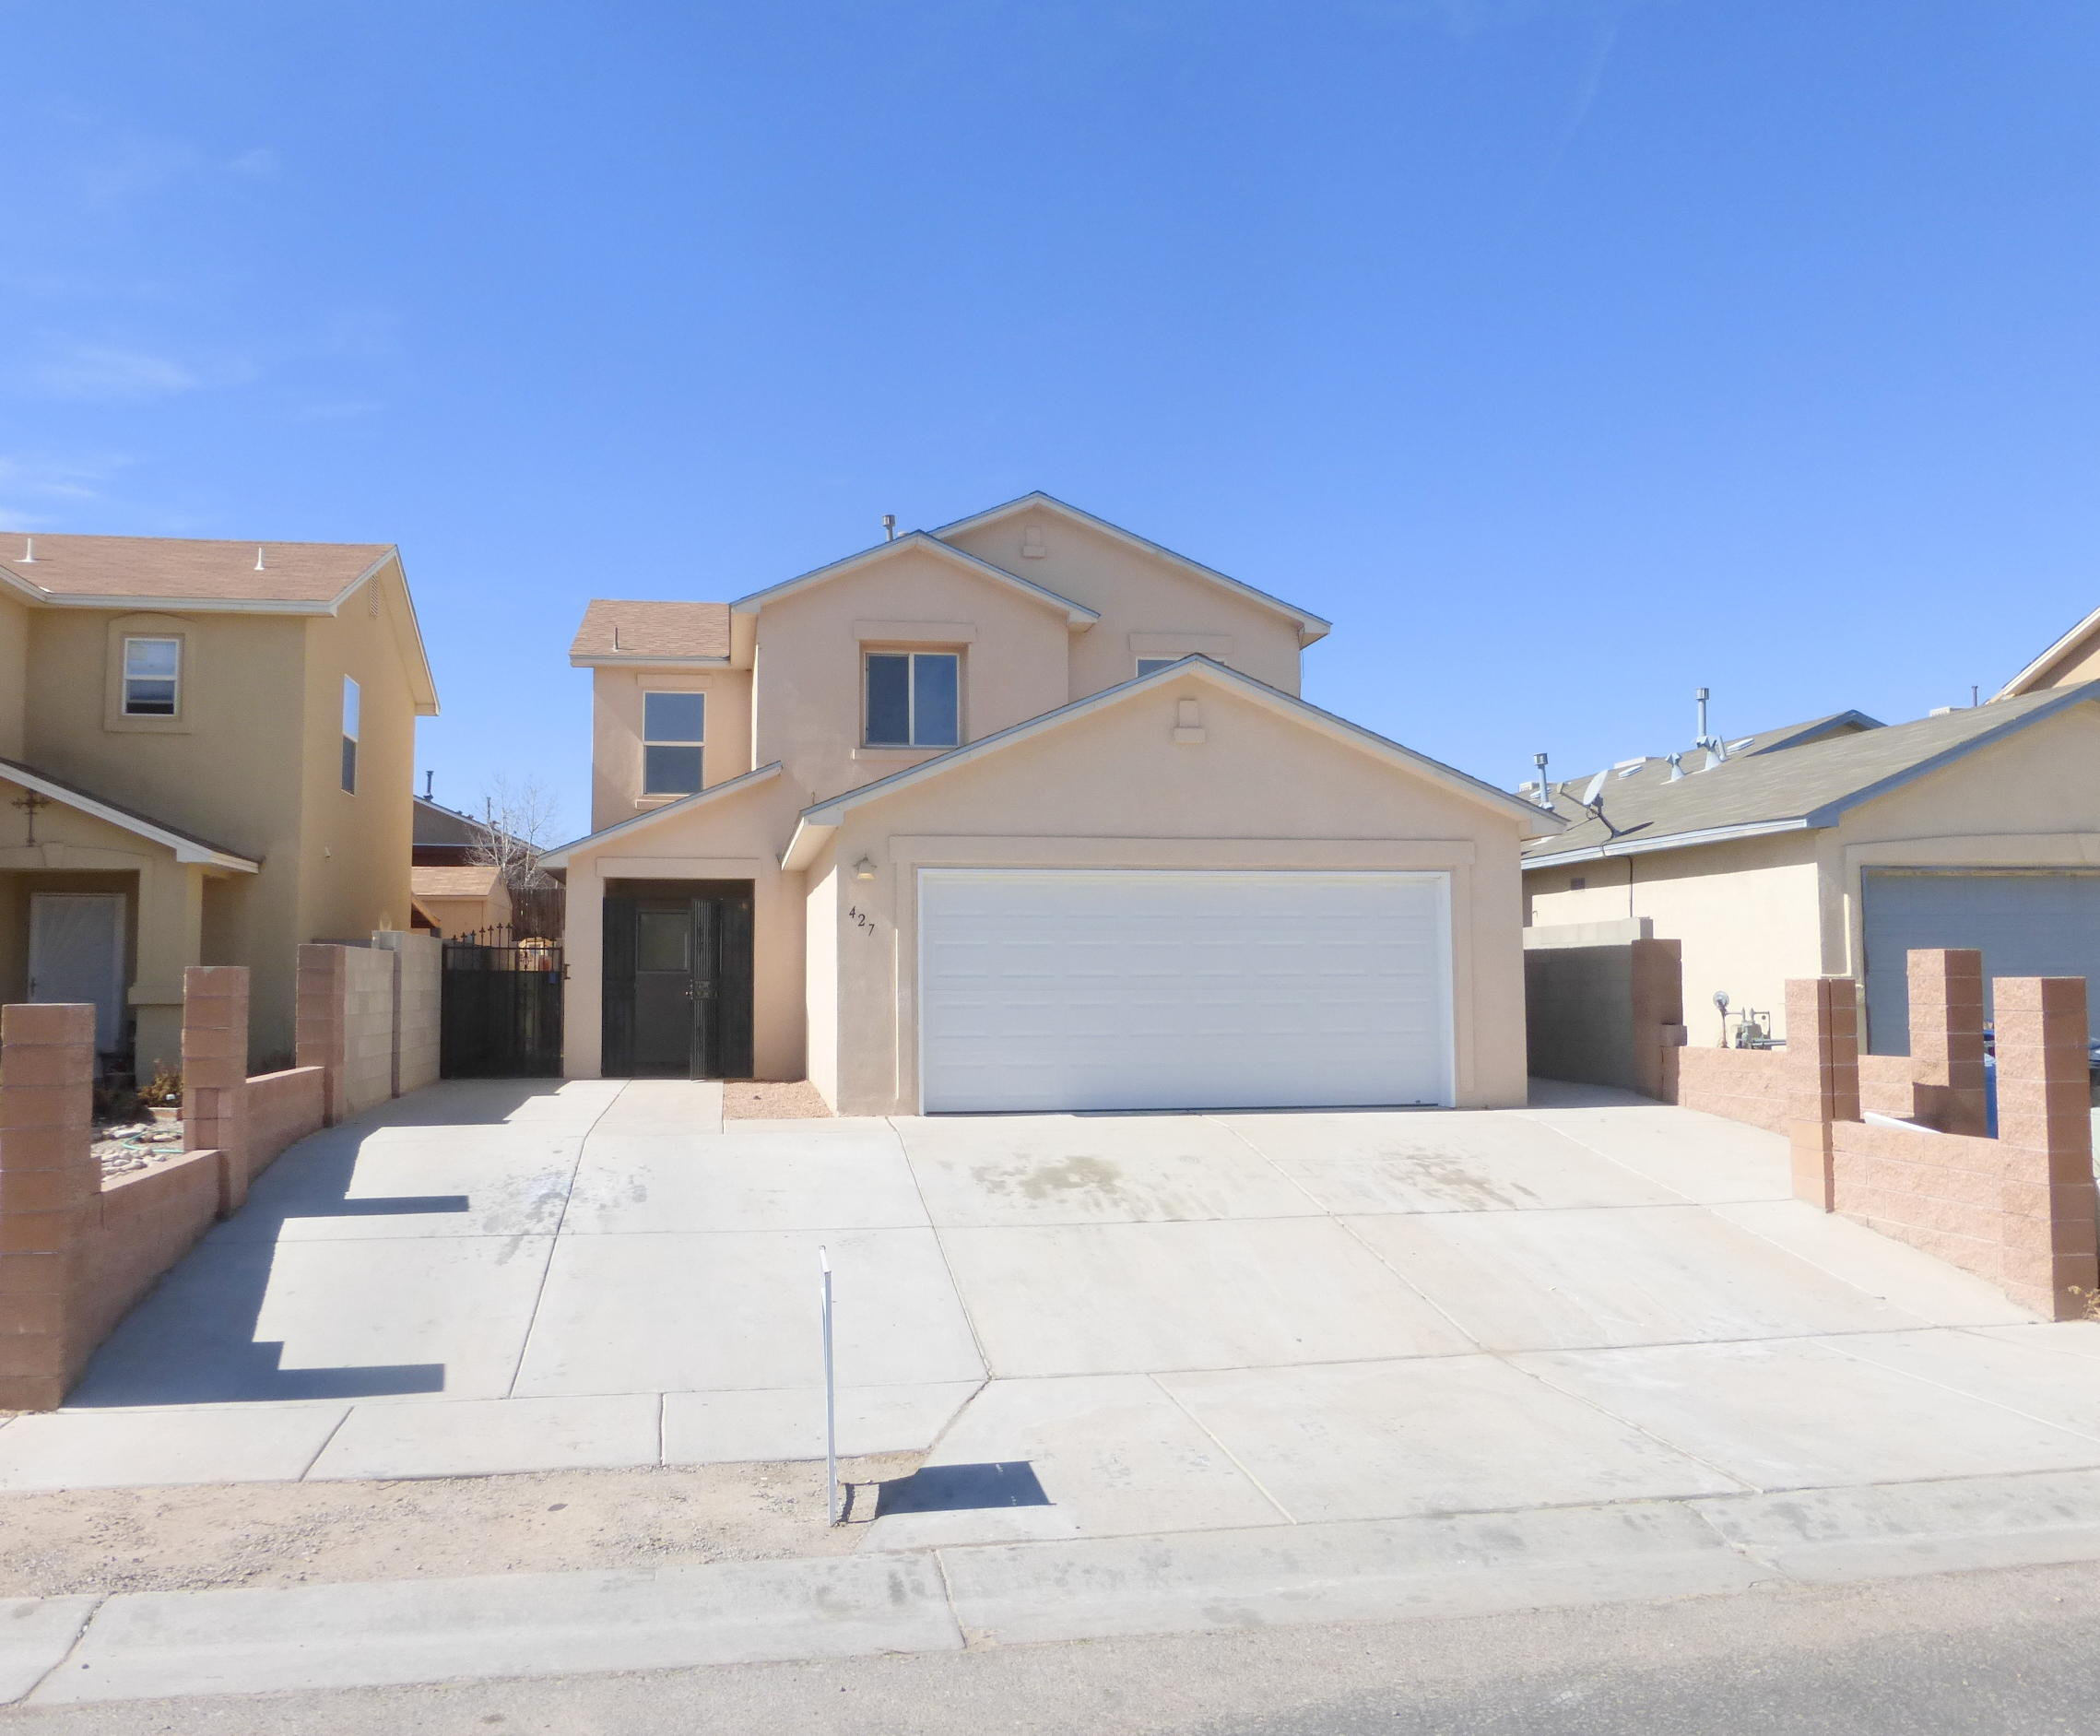 Come see this beautiful gem! This ideal home also has 3 bedrooms, an office & 2 living areas!  Many new updates done recently, including: kitchen cabinets, granite countertops, appliances, refrigerated air unit, furnace, flooring, interior paint, garage door, most interior doors, most electrical fixtures & more! The roof is about 2 years new! The backyard has a gardening area and a nice storage building! You'll love this sweet home!